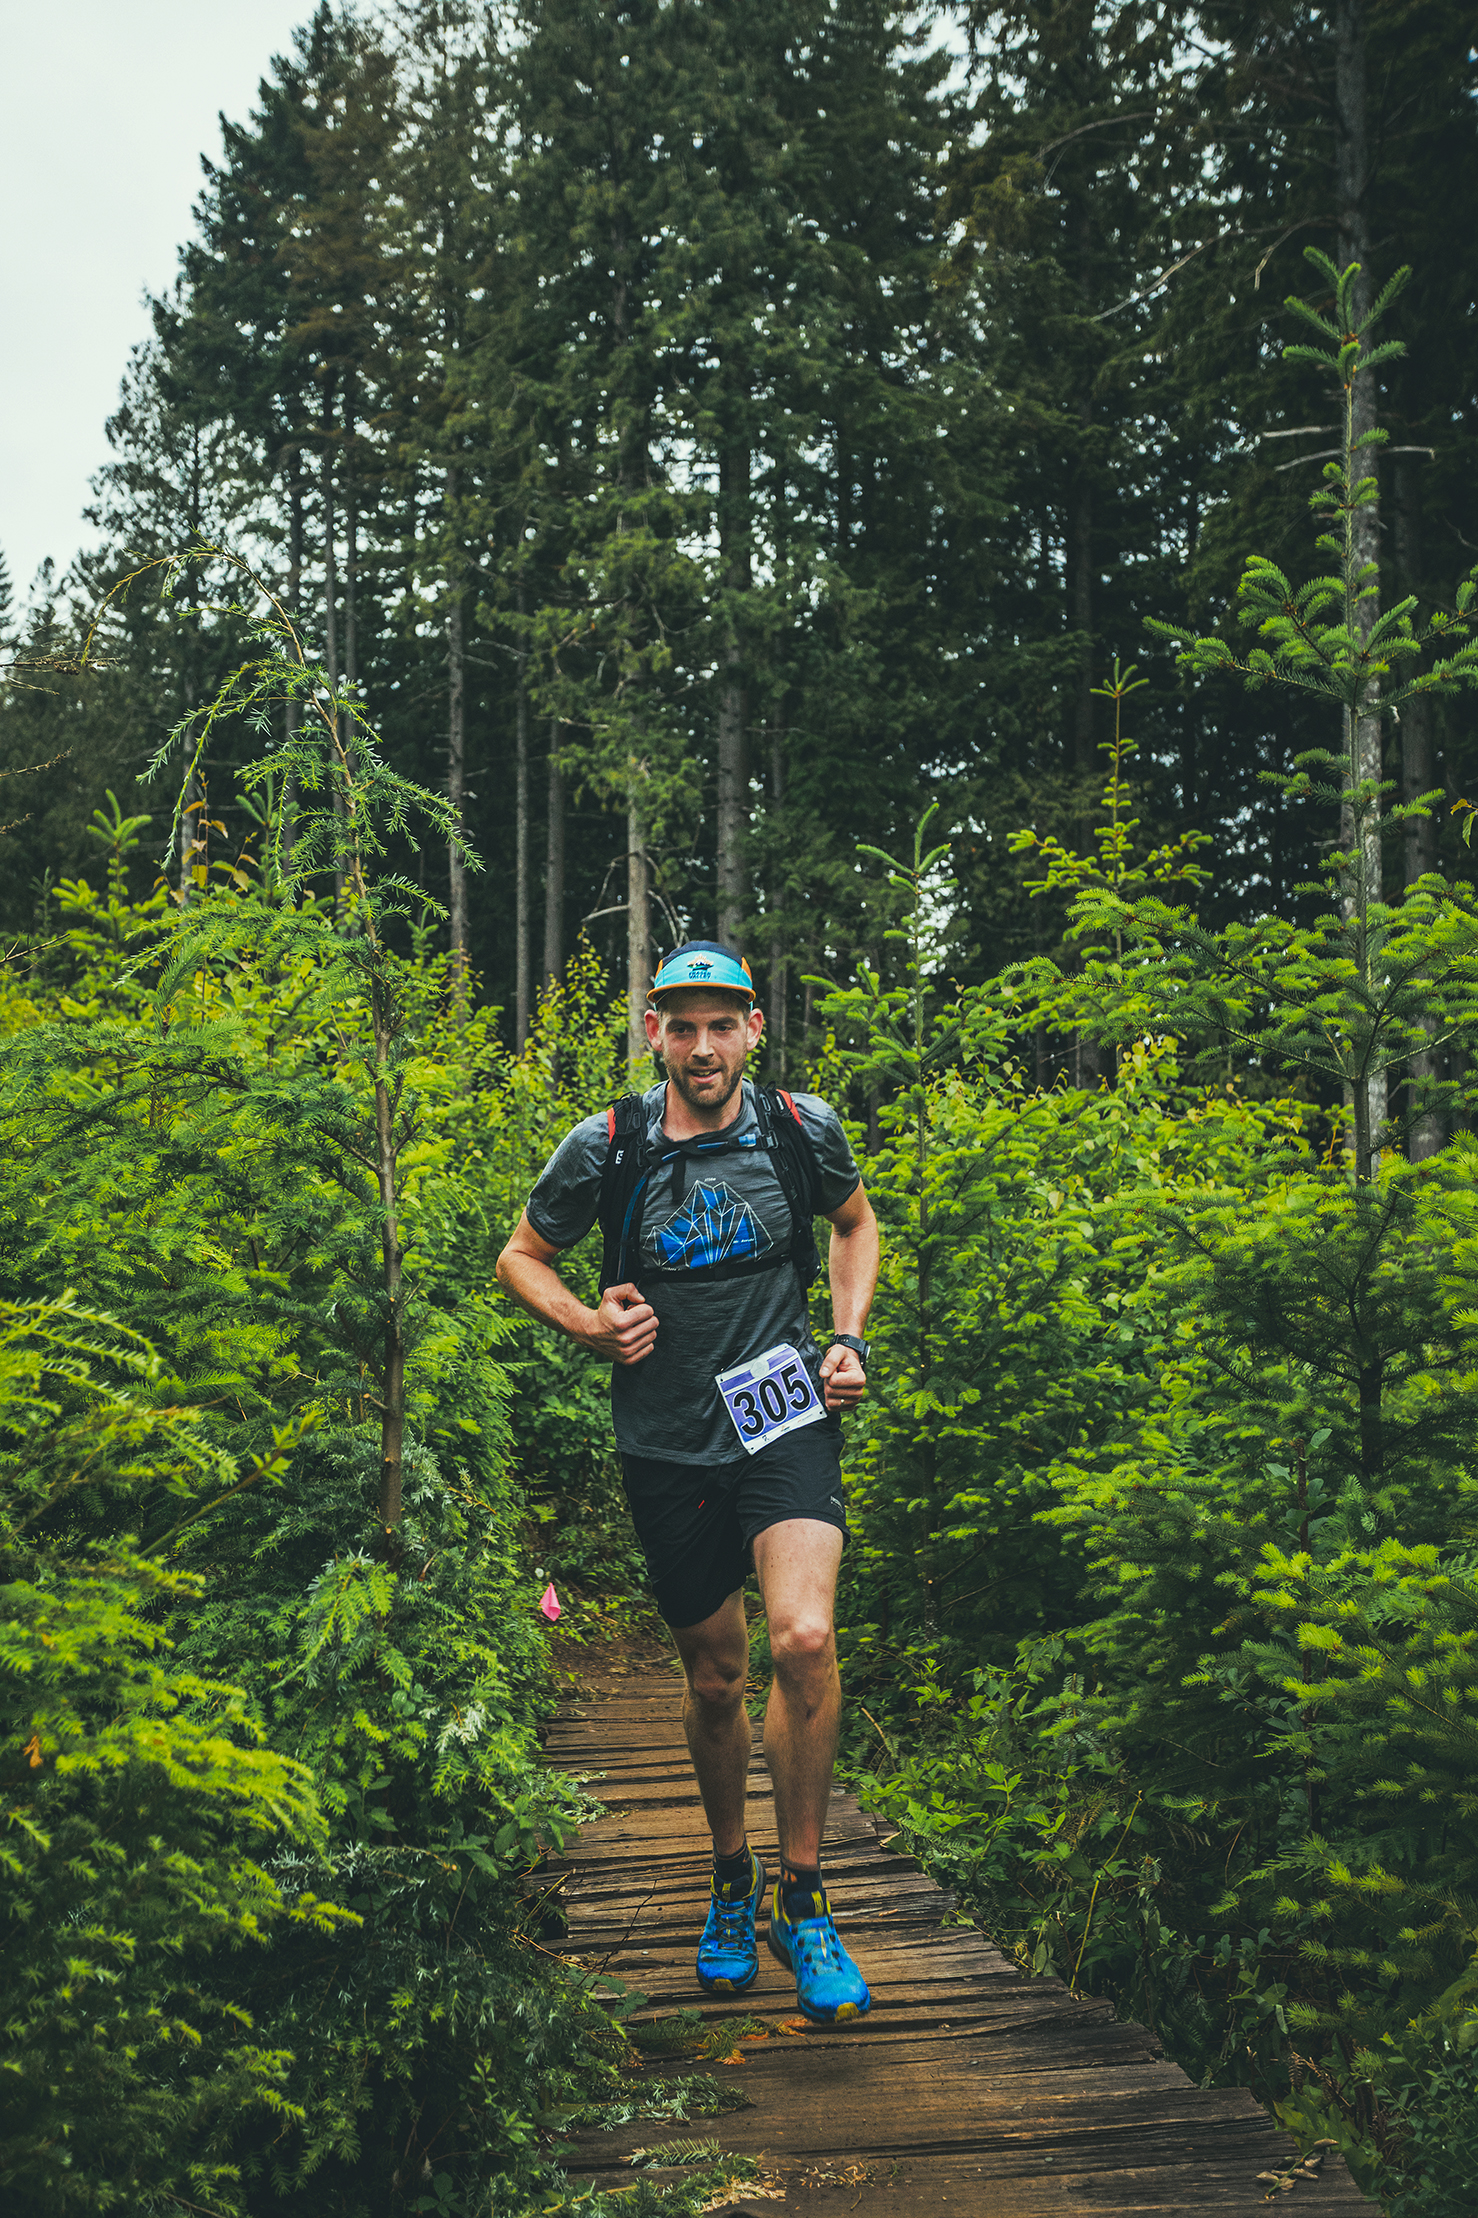 Fraser Valley Trail Races - Bear Mountain - IMG_1454 by Brice Ferre Studio - Vancouver Portrait Adventure and Athlete Photographer.jpg